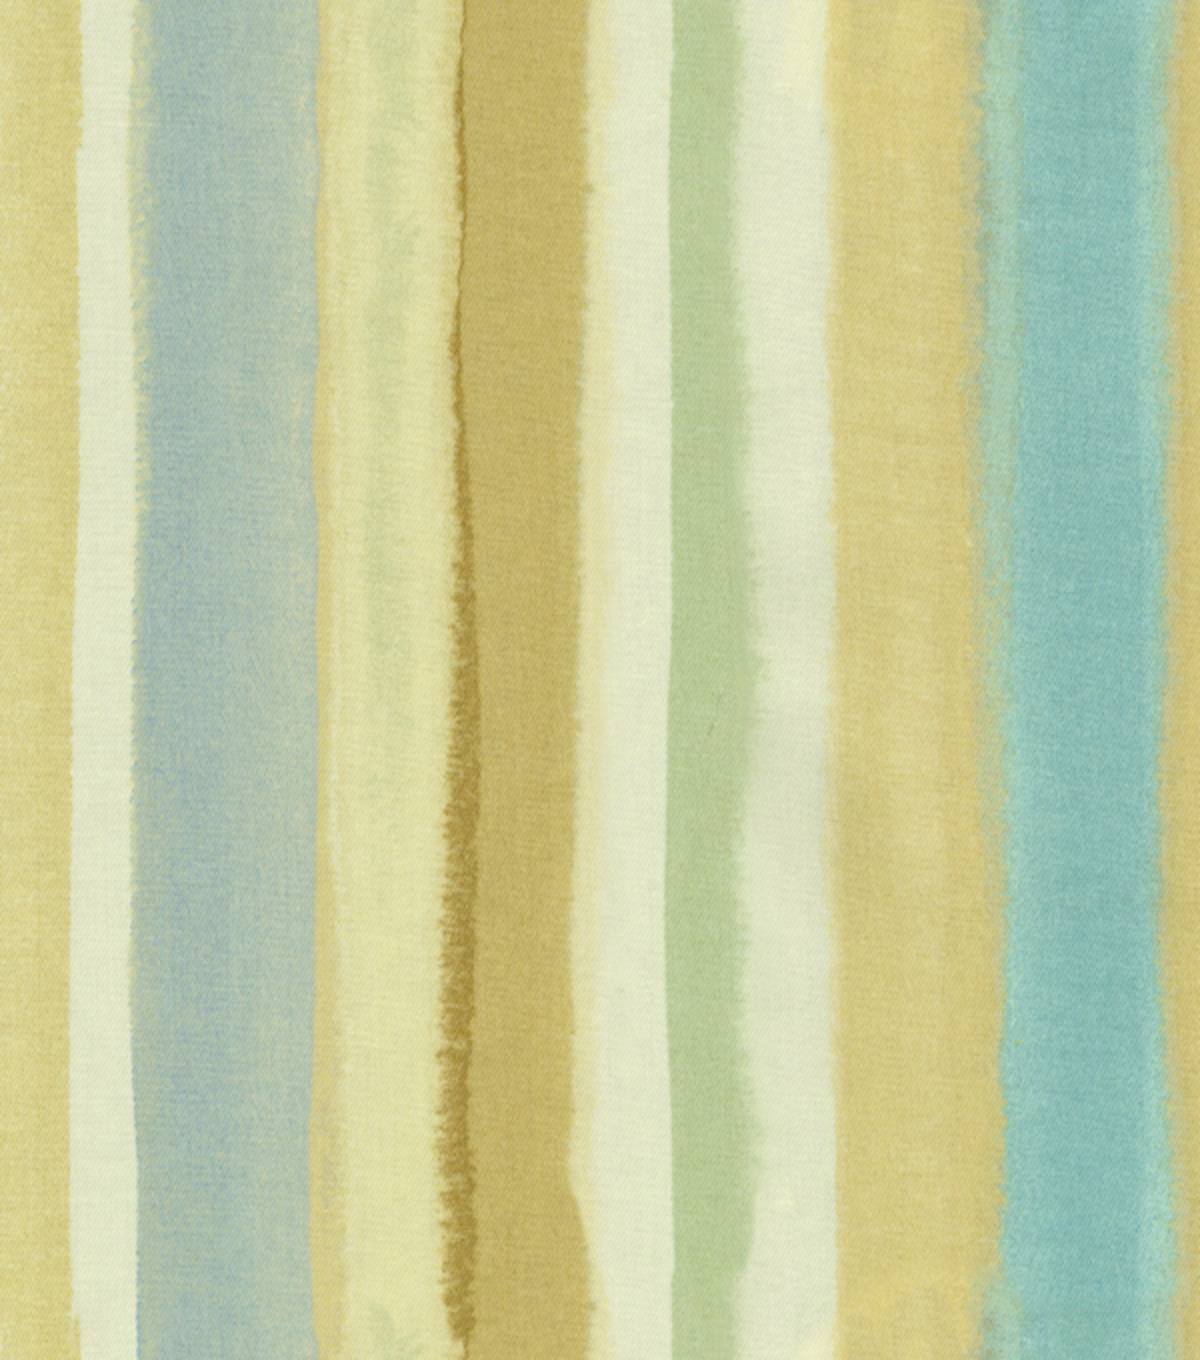 Home Decor 8\u0022x8\u0022 Fabric Swatch-HGTV HOME Artistic Streak Glacier